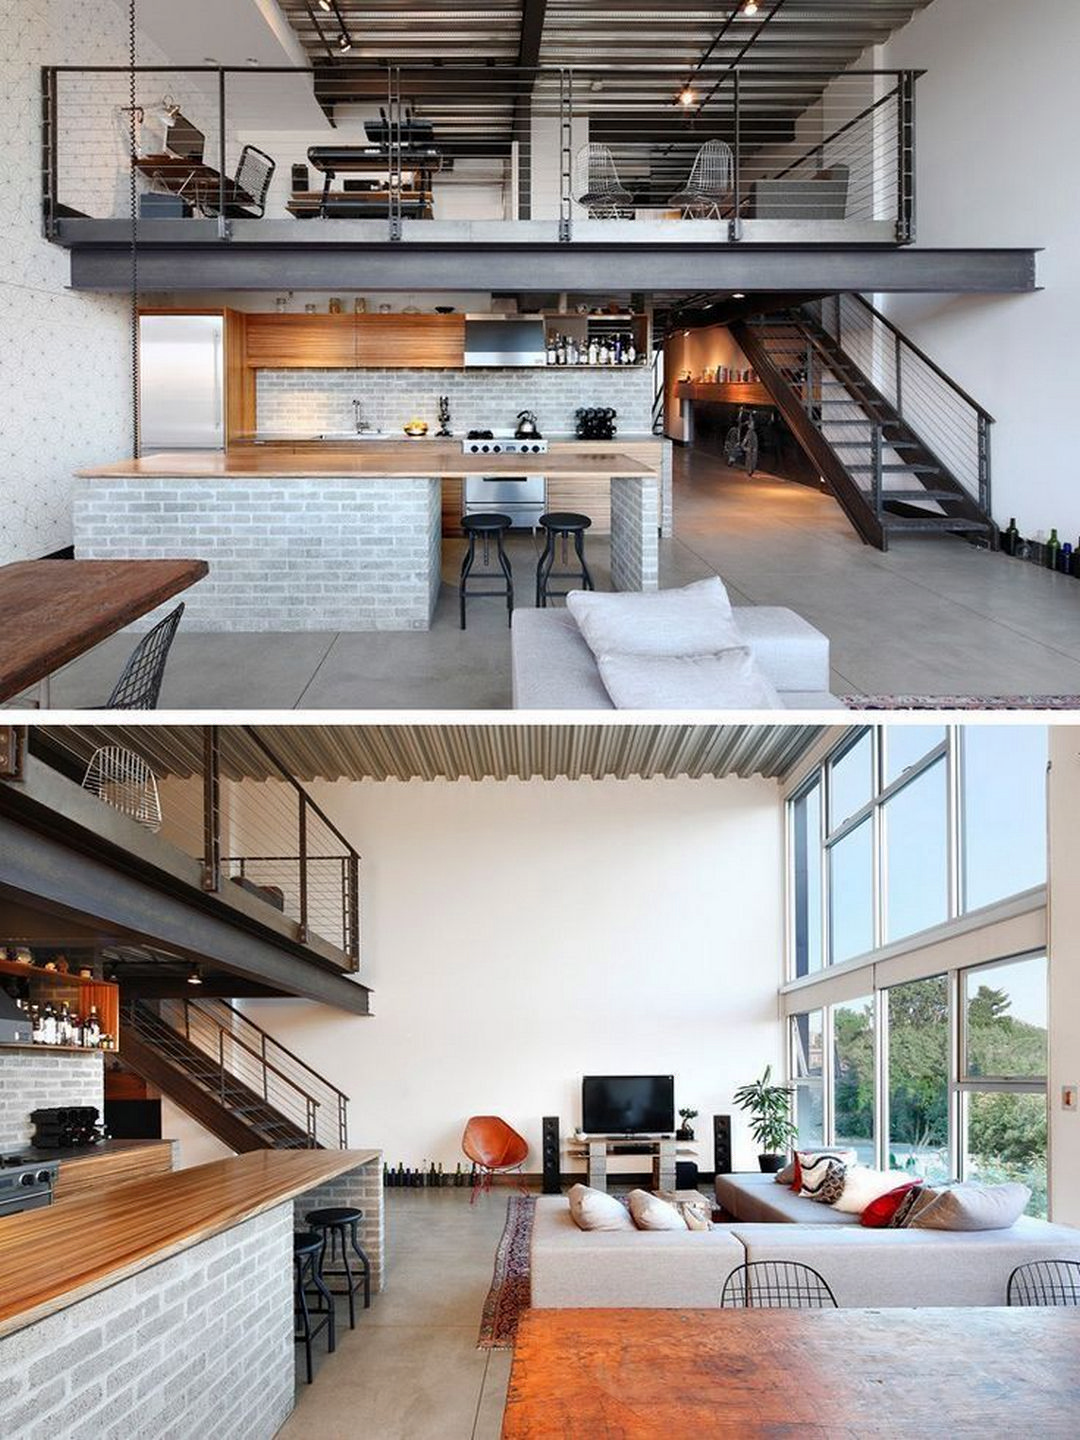 Weekend Inspirations #1 26 Interior And Exterior